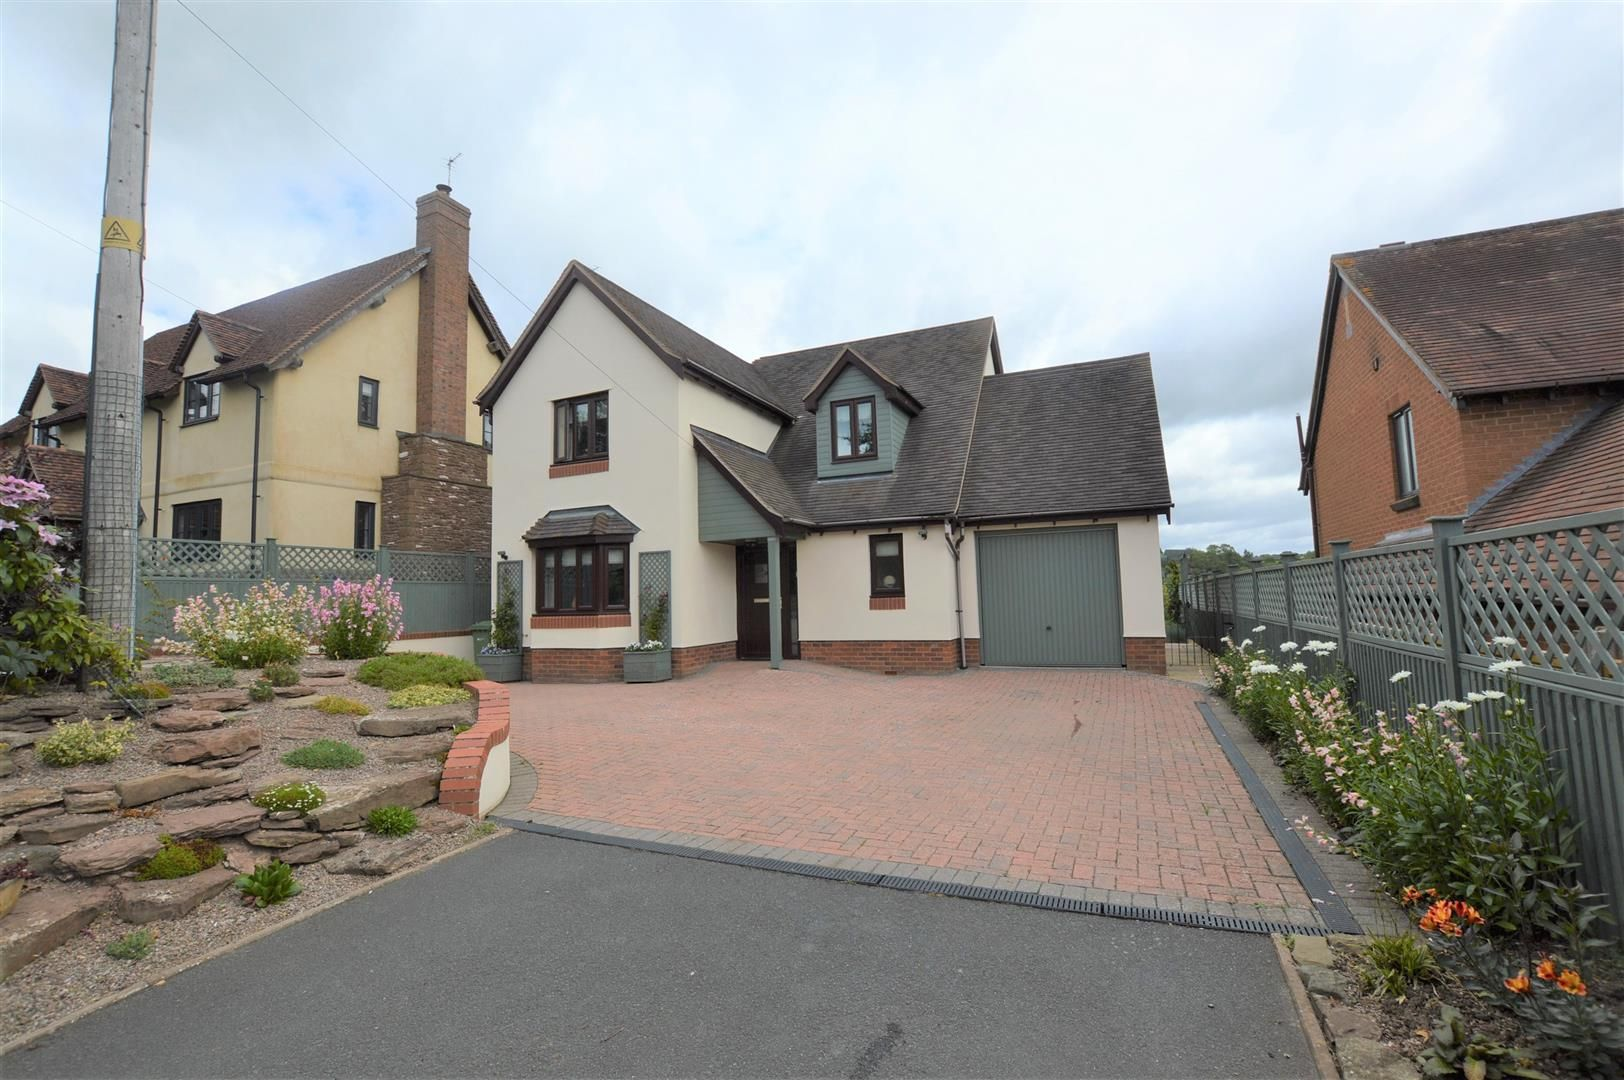 3 bed detached for sale in Kimbolton 1